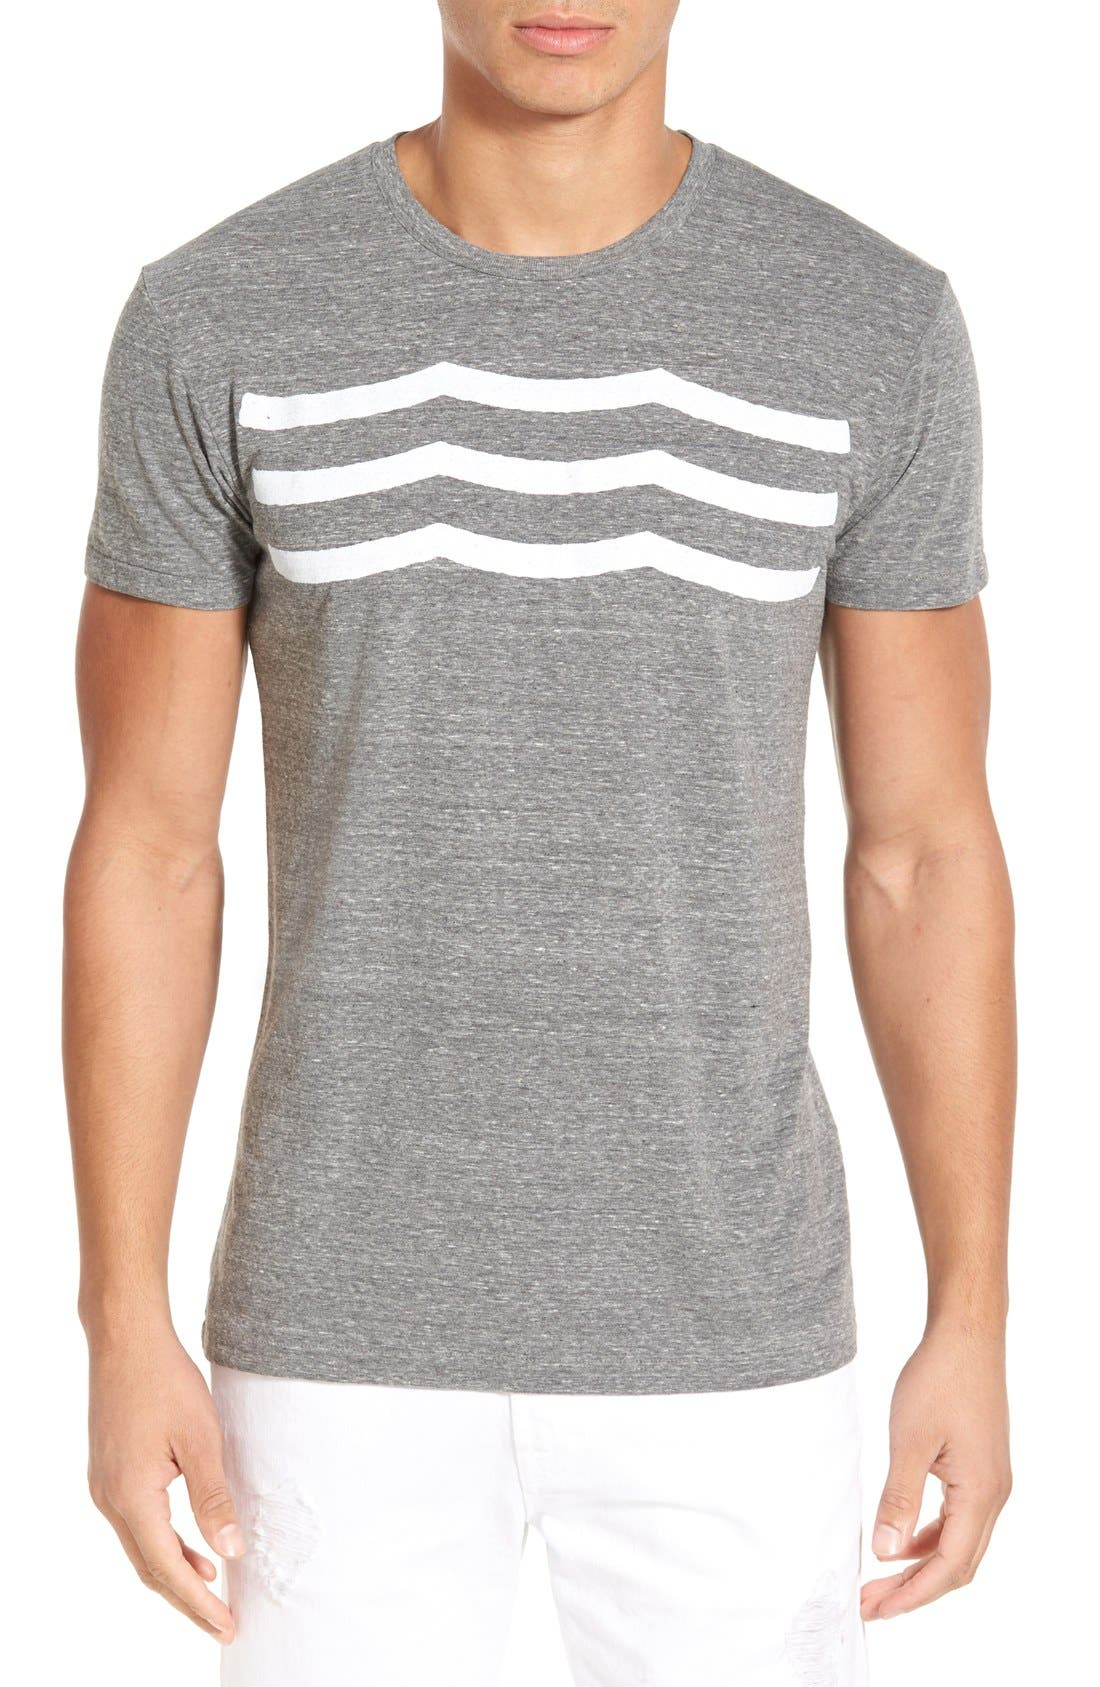 'Waves' Graphic T-Shirt,                         Main,                         color, Heather Grey